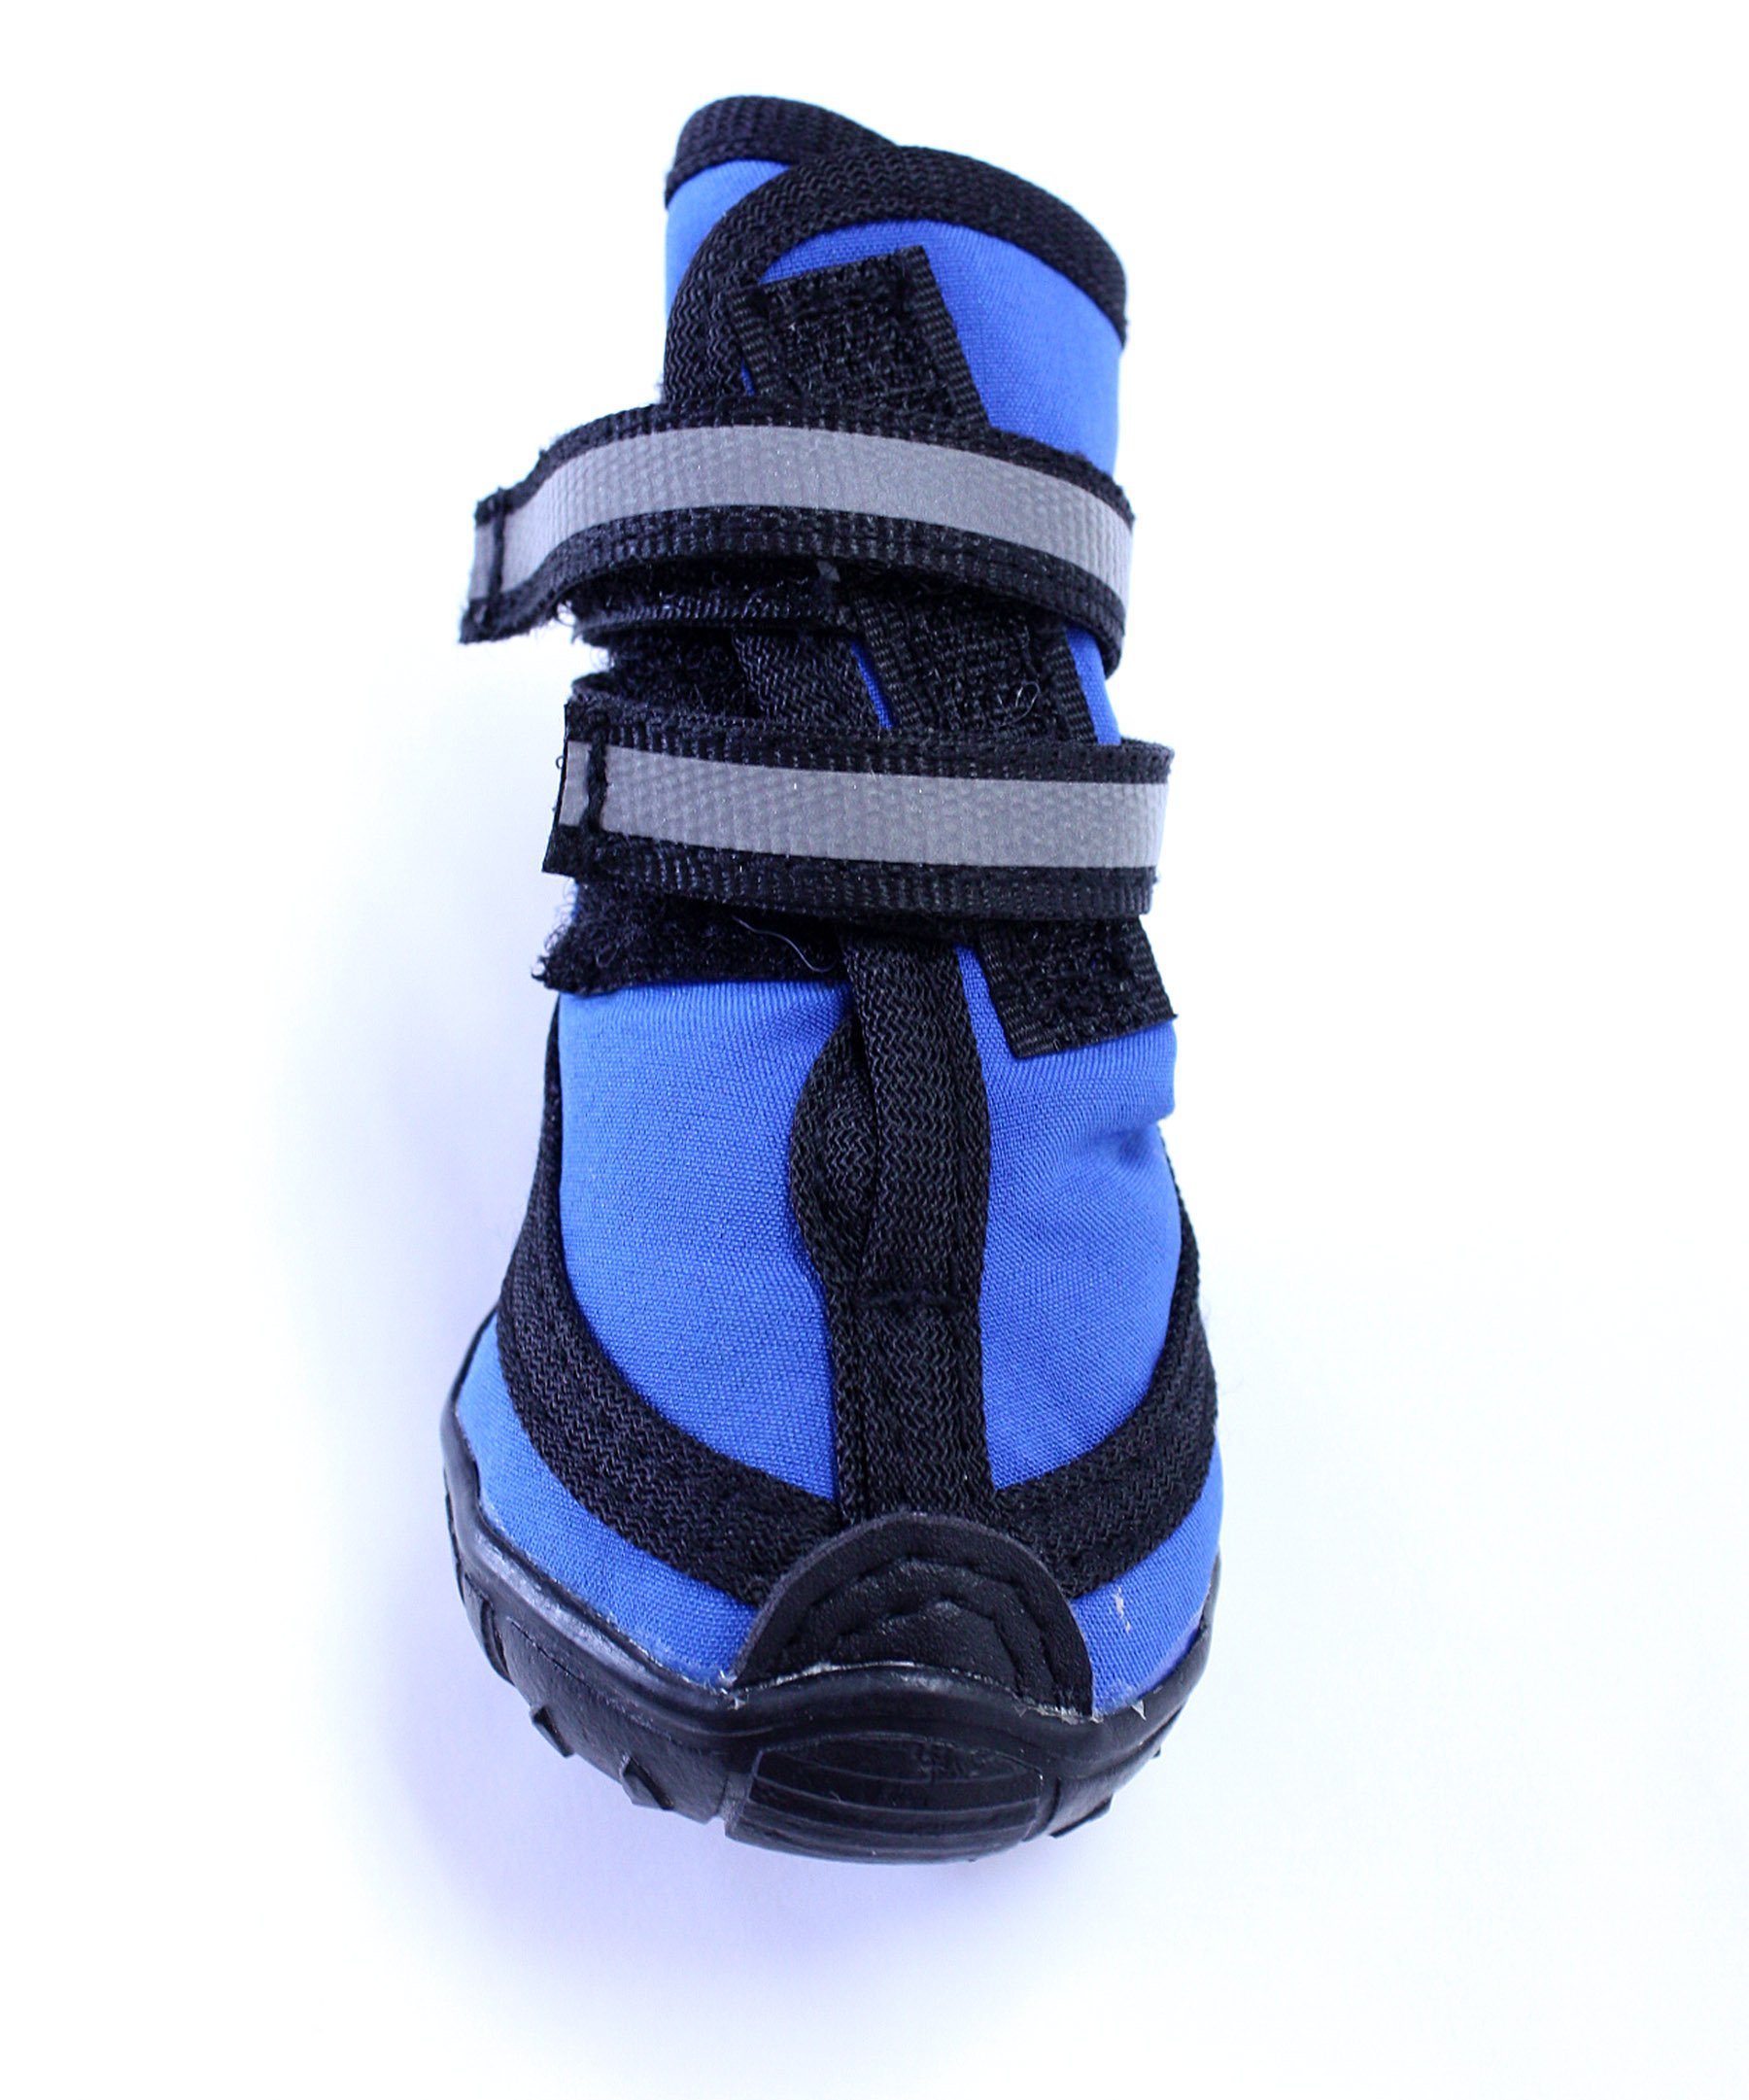 Fashion Pet Performance Waterproof Dog Boots, Medium, Blue